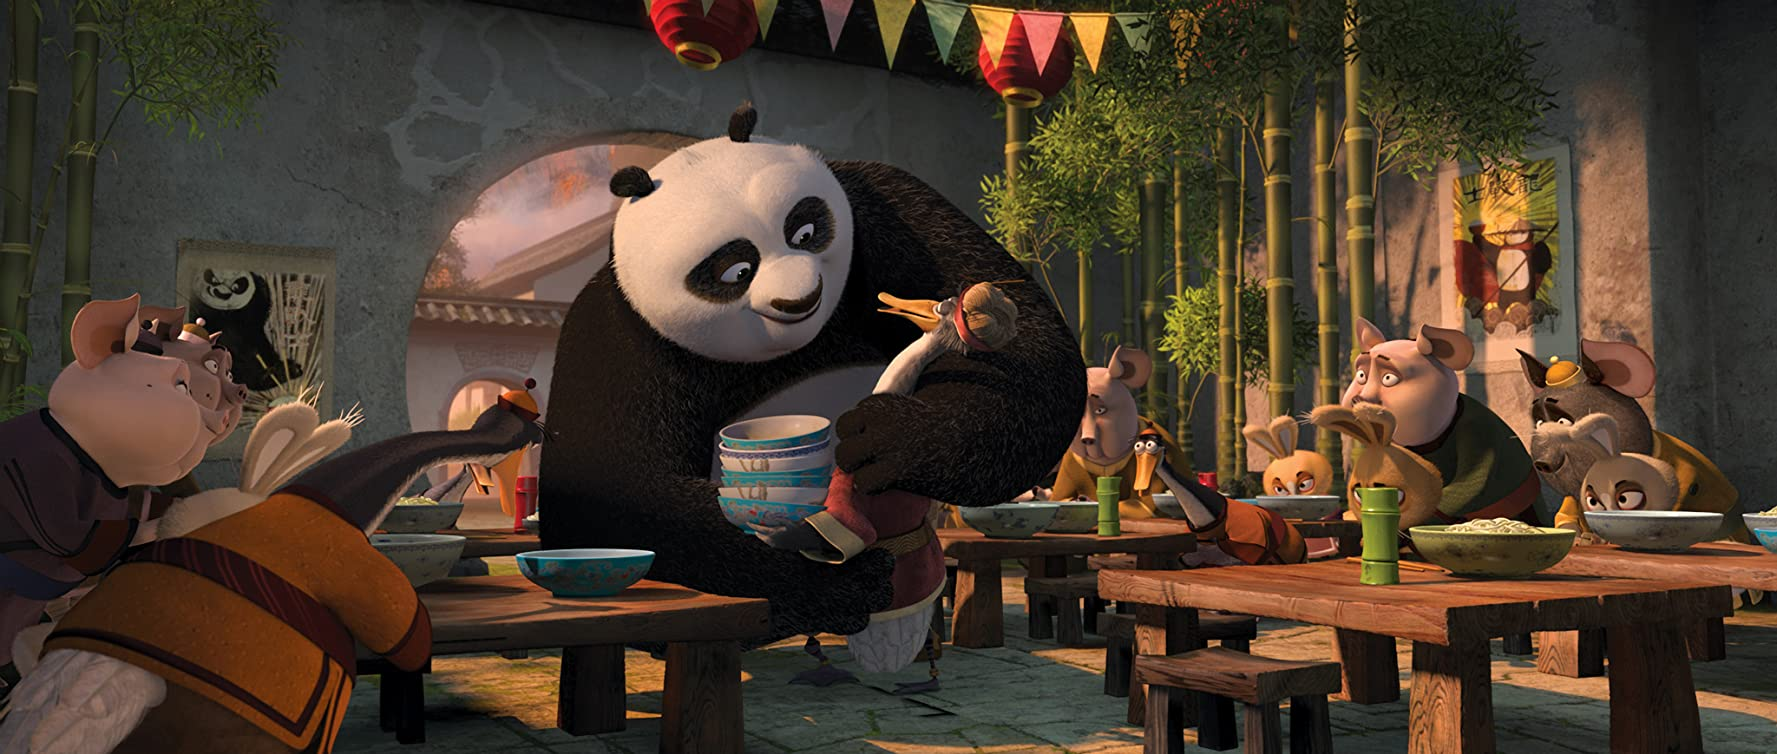 Jack Black and James Hong in Kung Fu Panda 2 (2011)